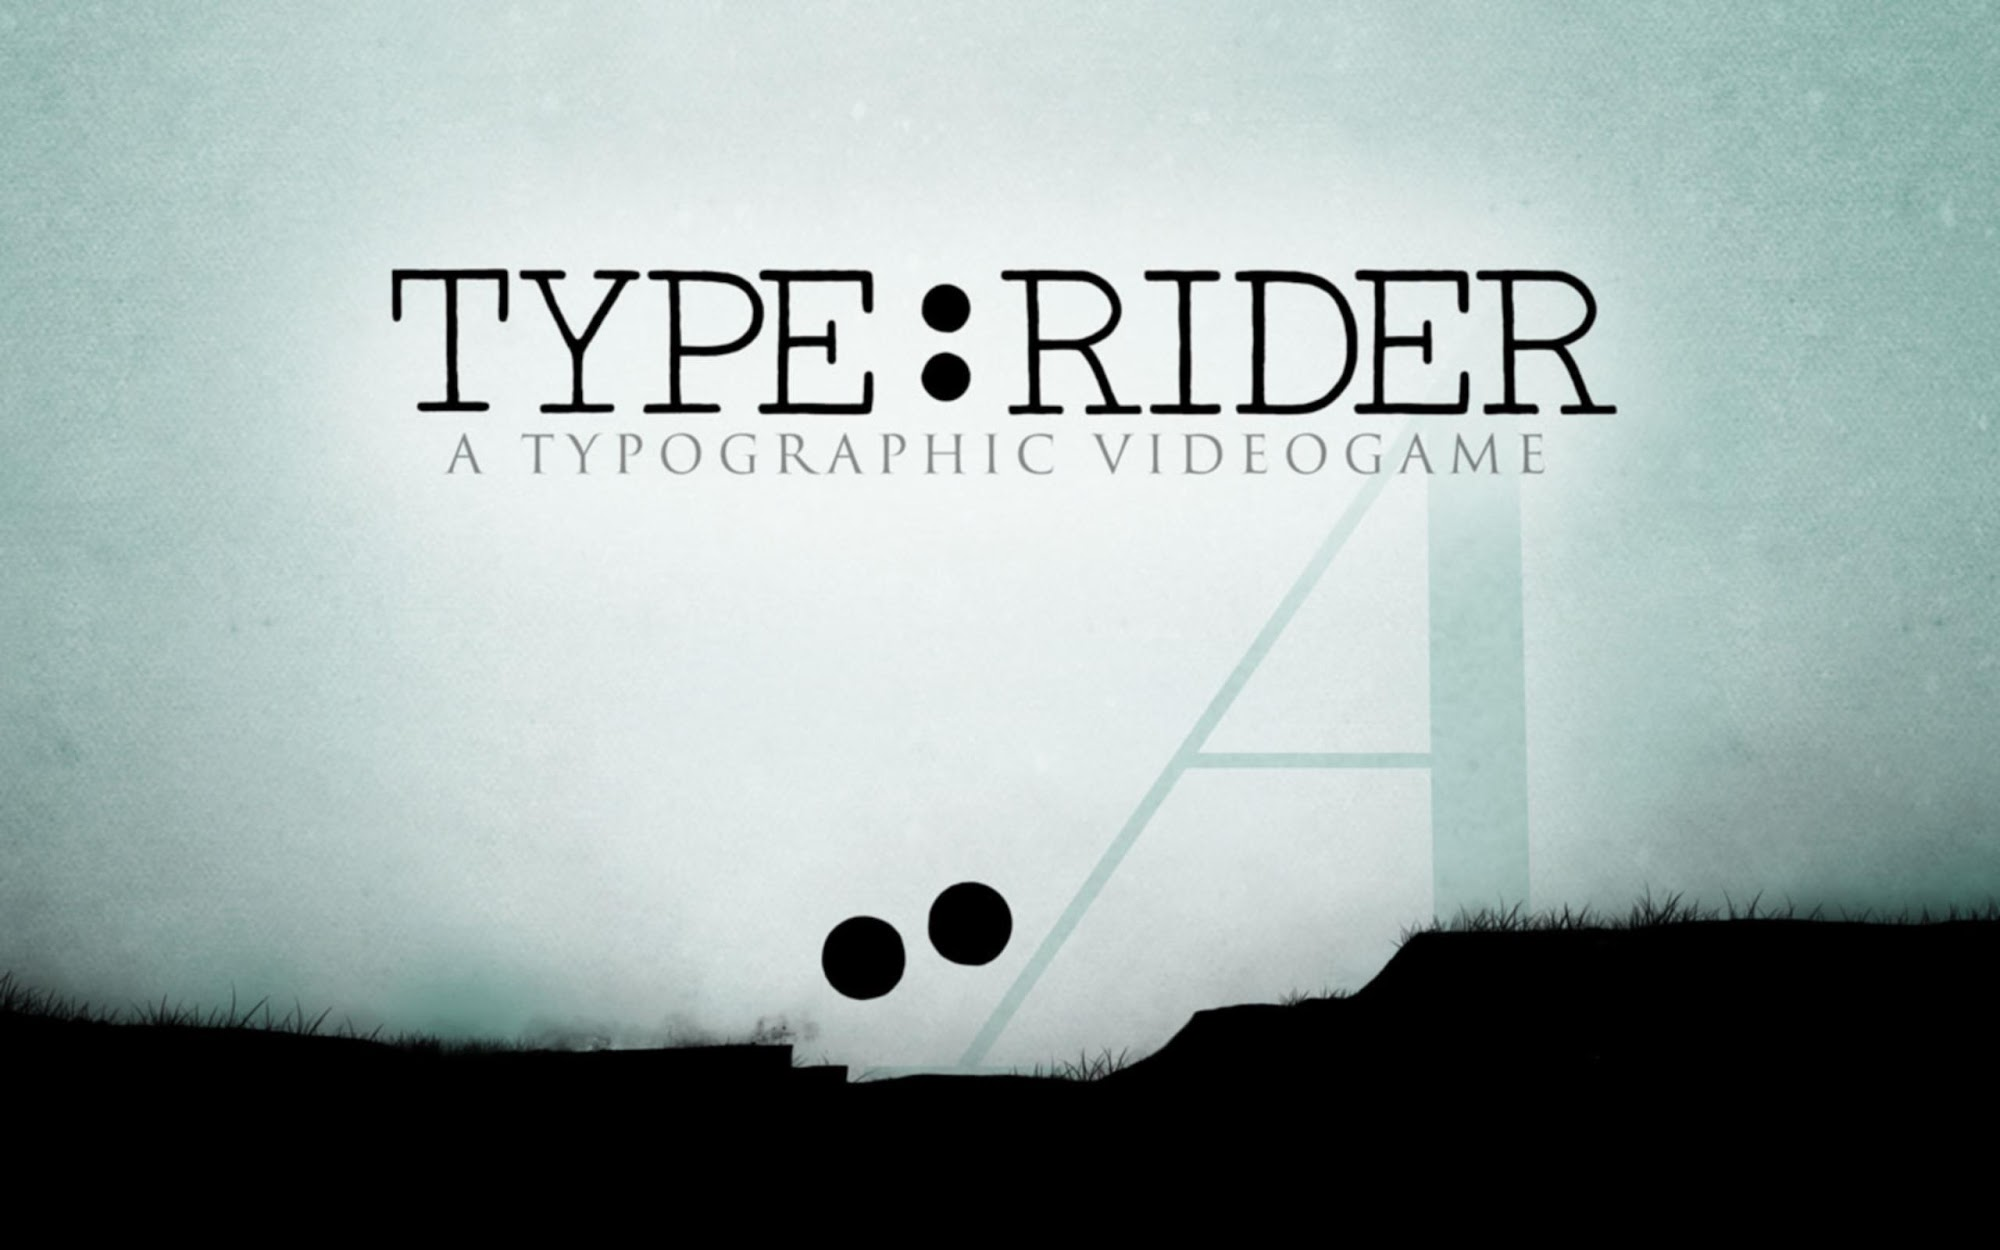 Type:Rider screenshot #9